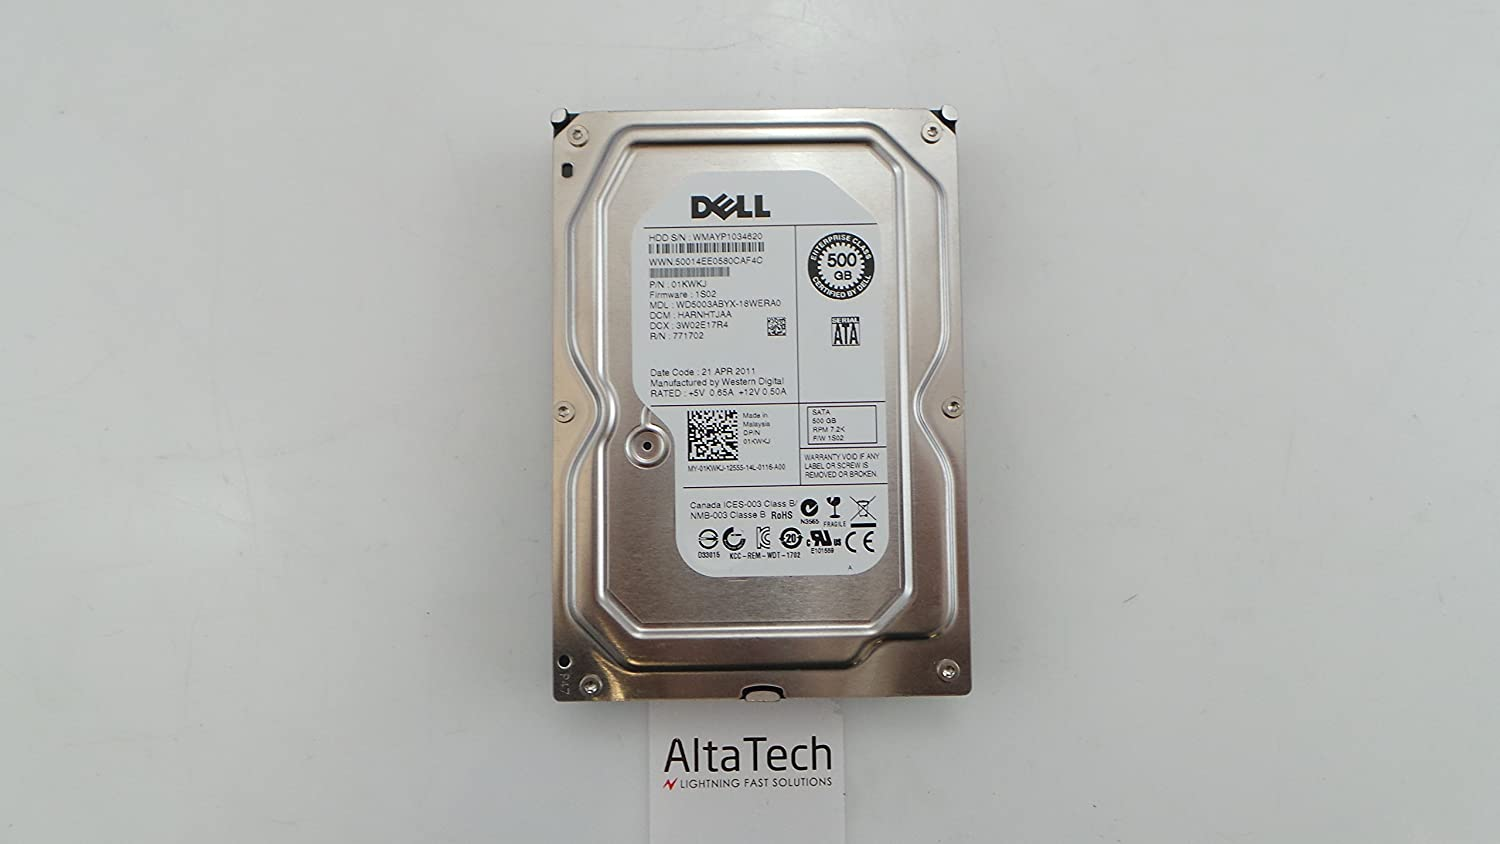 DELL 1KWKJ Dell 500Gb SATA 7.2k 3.5 Hard Drive